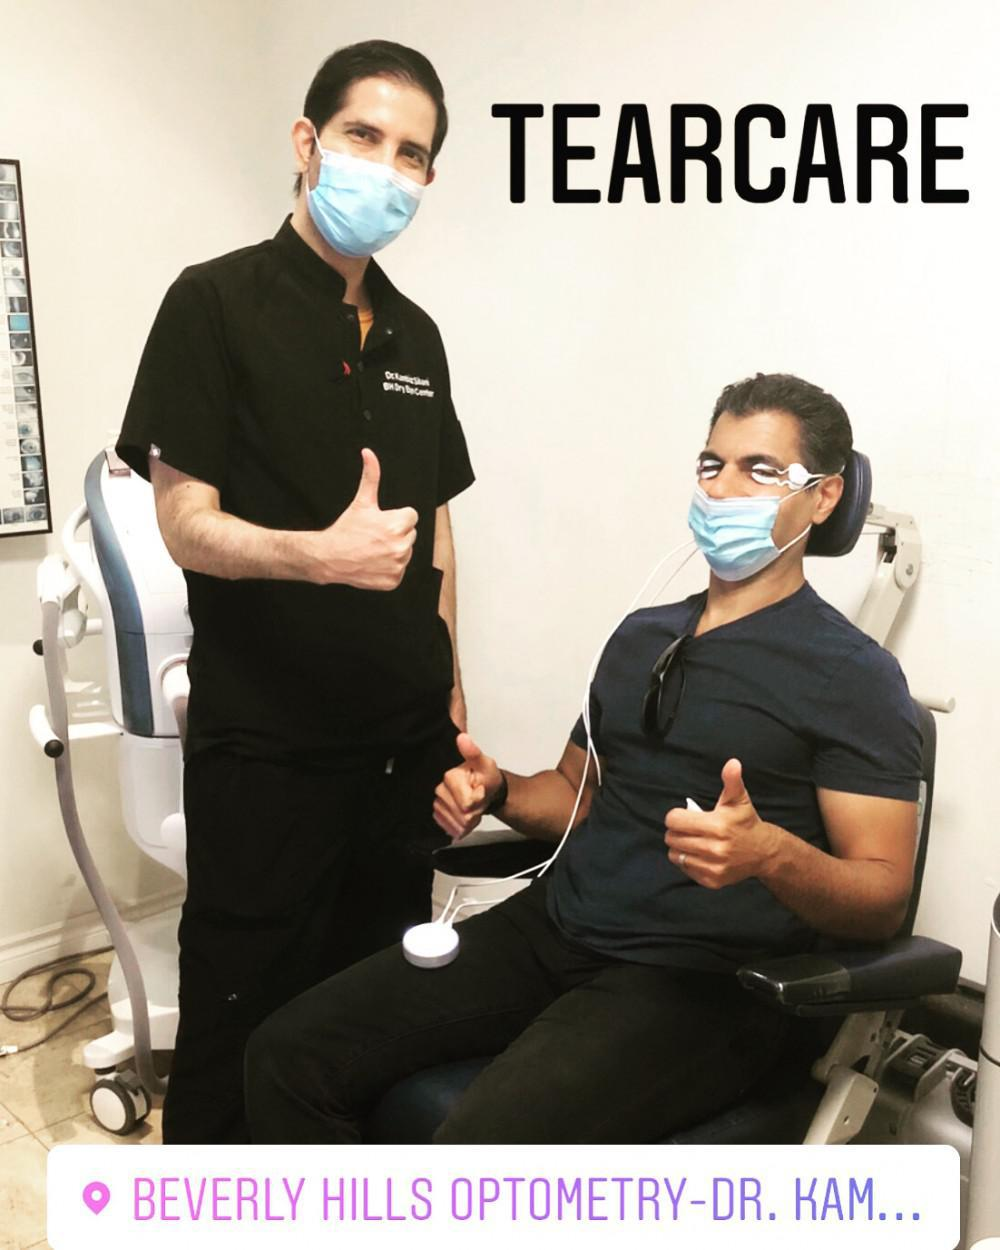 TearCare Beverly Hills Optometry (Tear Care)